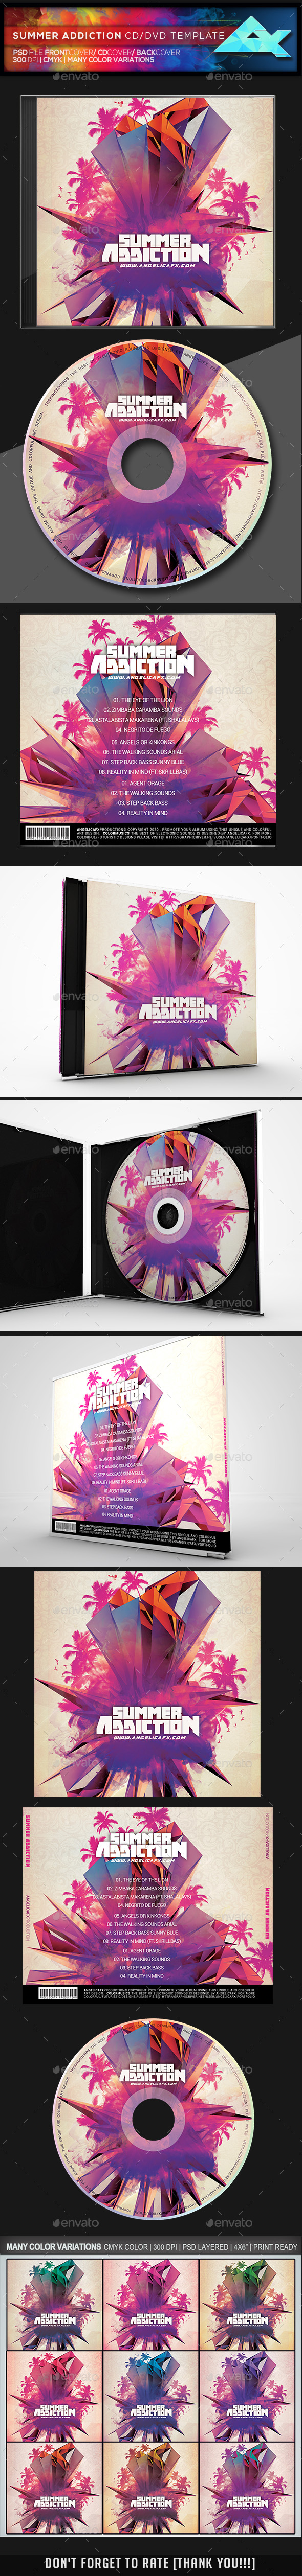 Summer Addiction CD/DVD Template - CD & DVD Artwork Print Templates